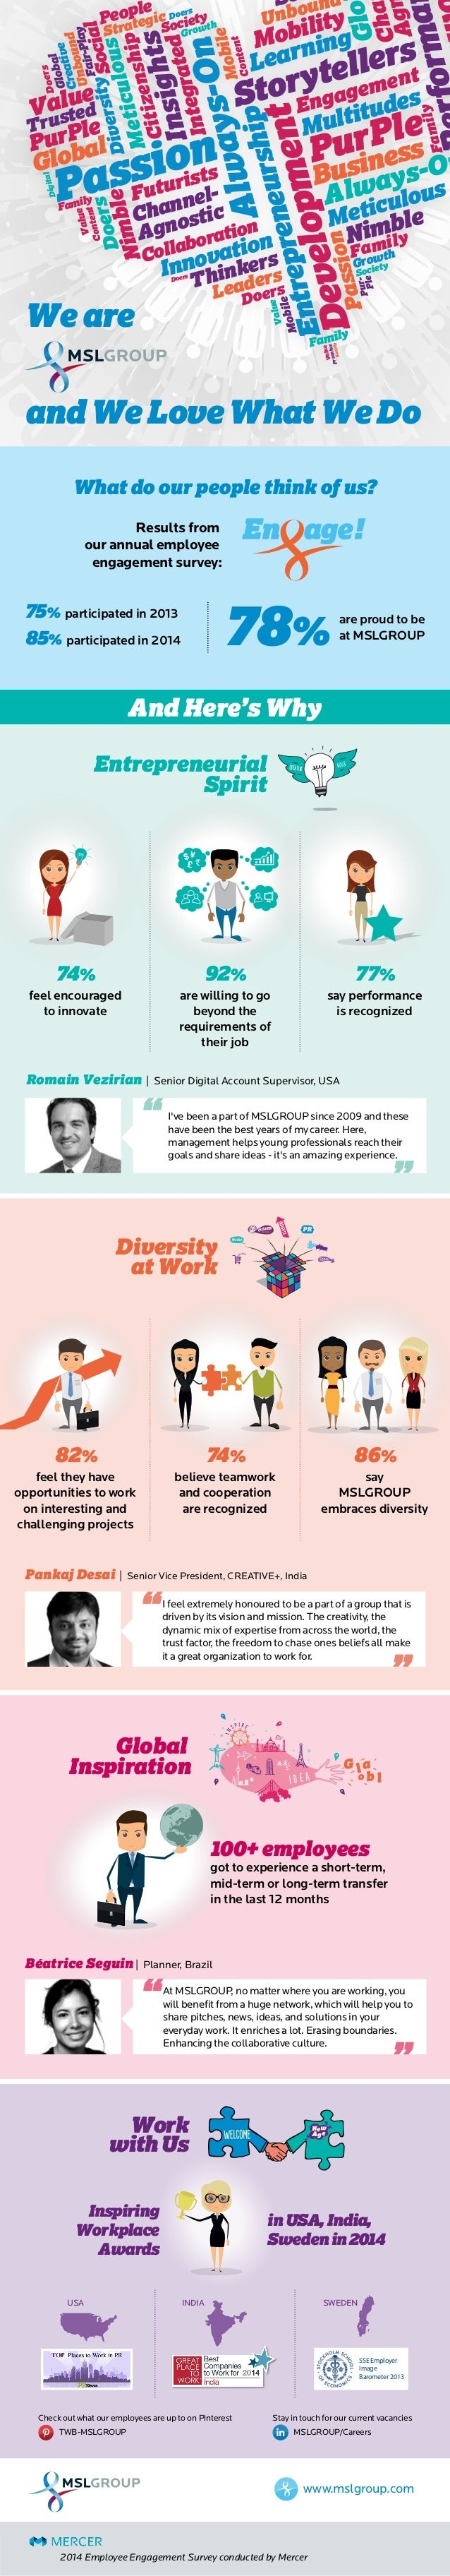 Engage! MSLGROUP Employee Survey Infographic